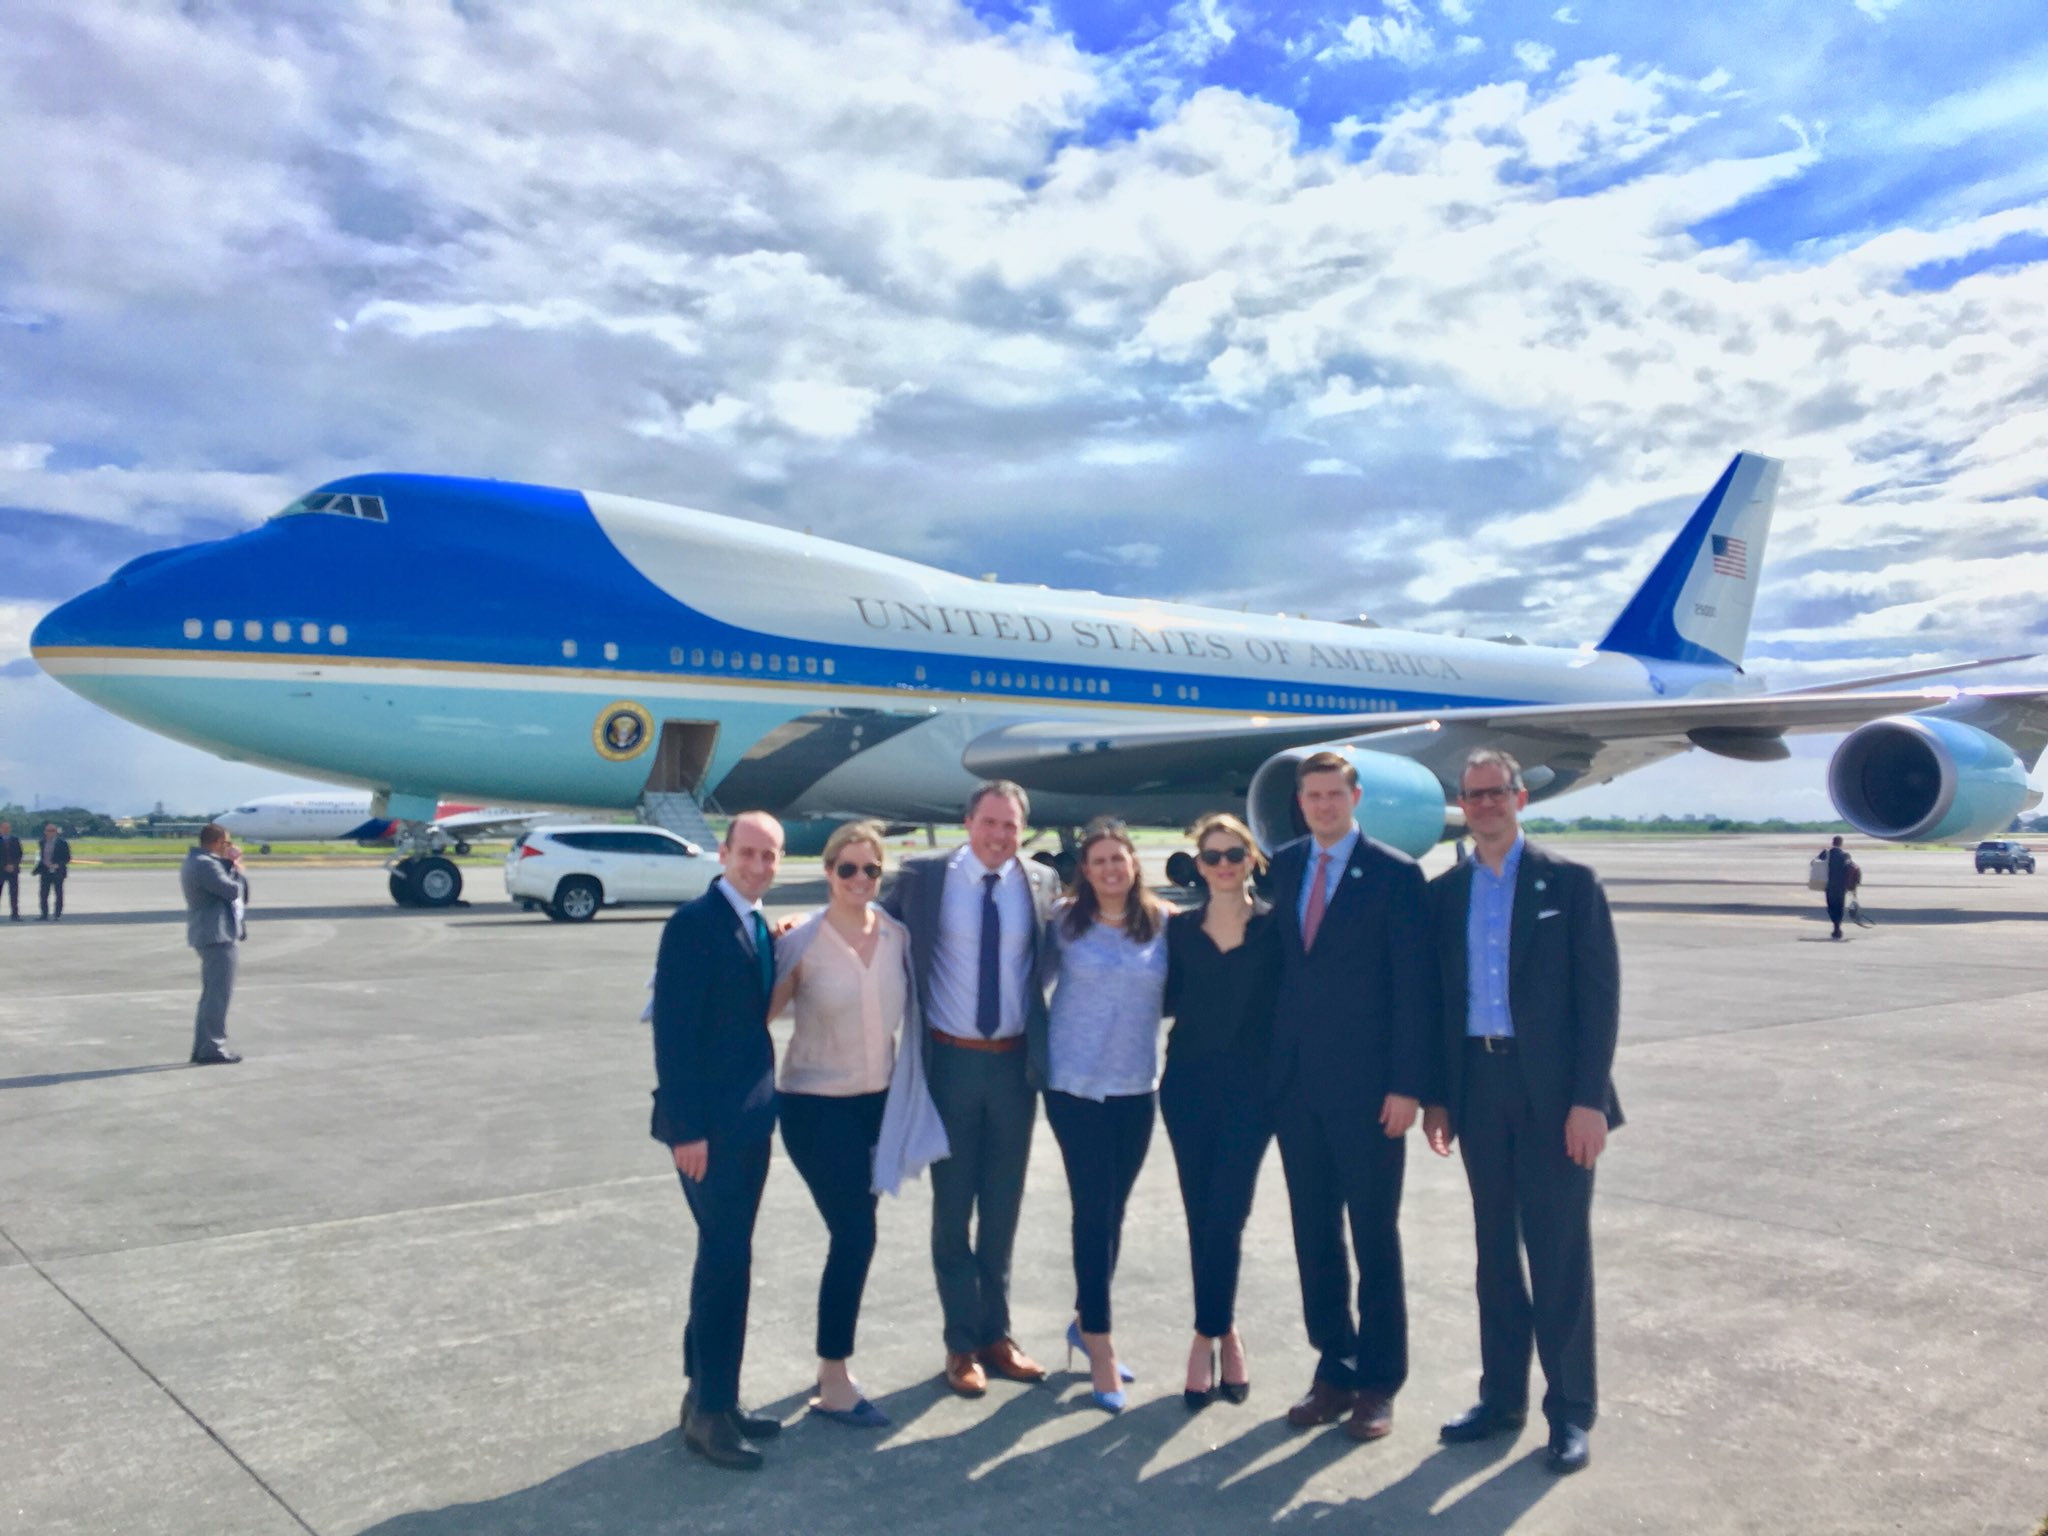 Group shot in front of AF1 just before we head home after @POTUS historic trip across Asia. #POTUSinAsia https://t.co/Px6TYOgfmT